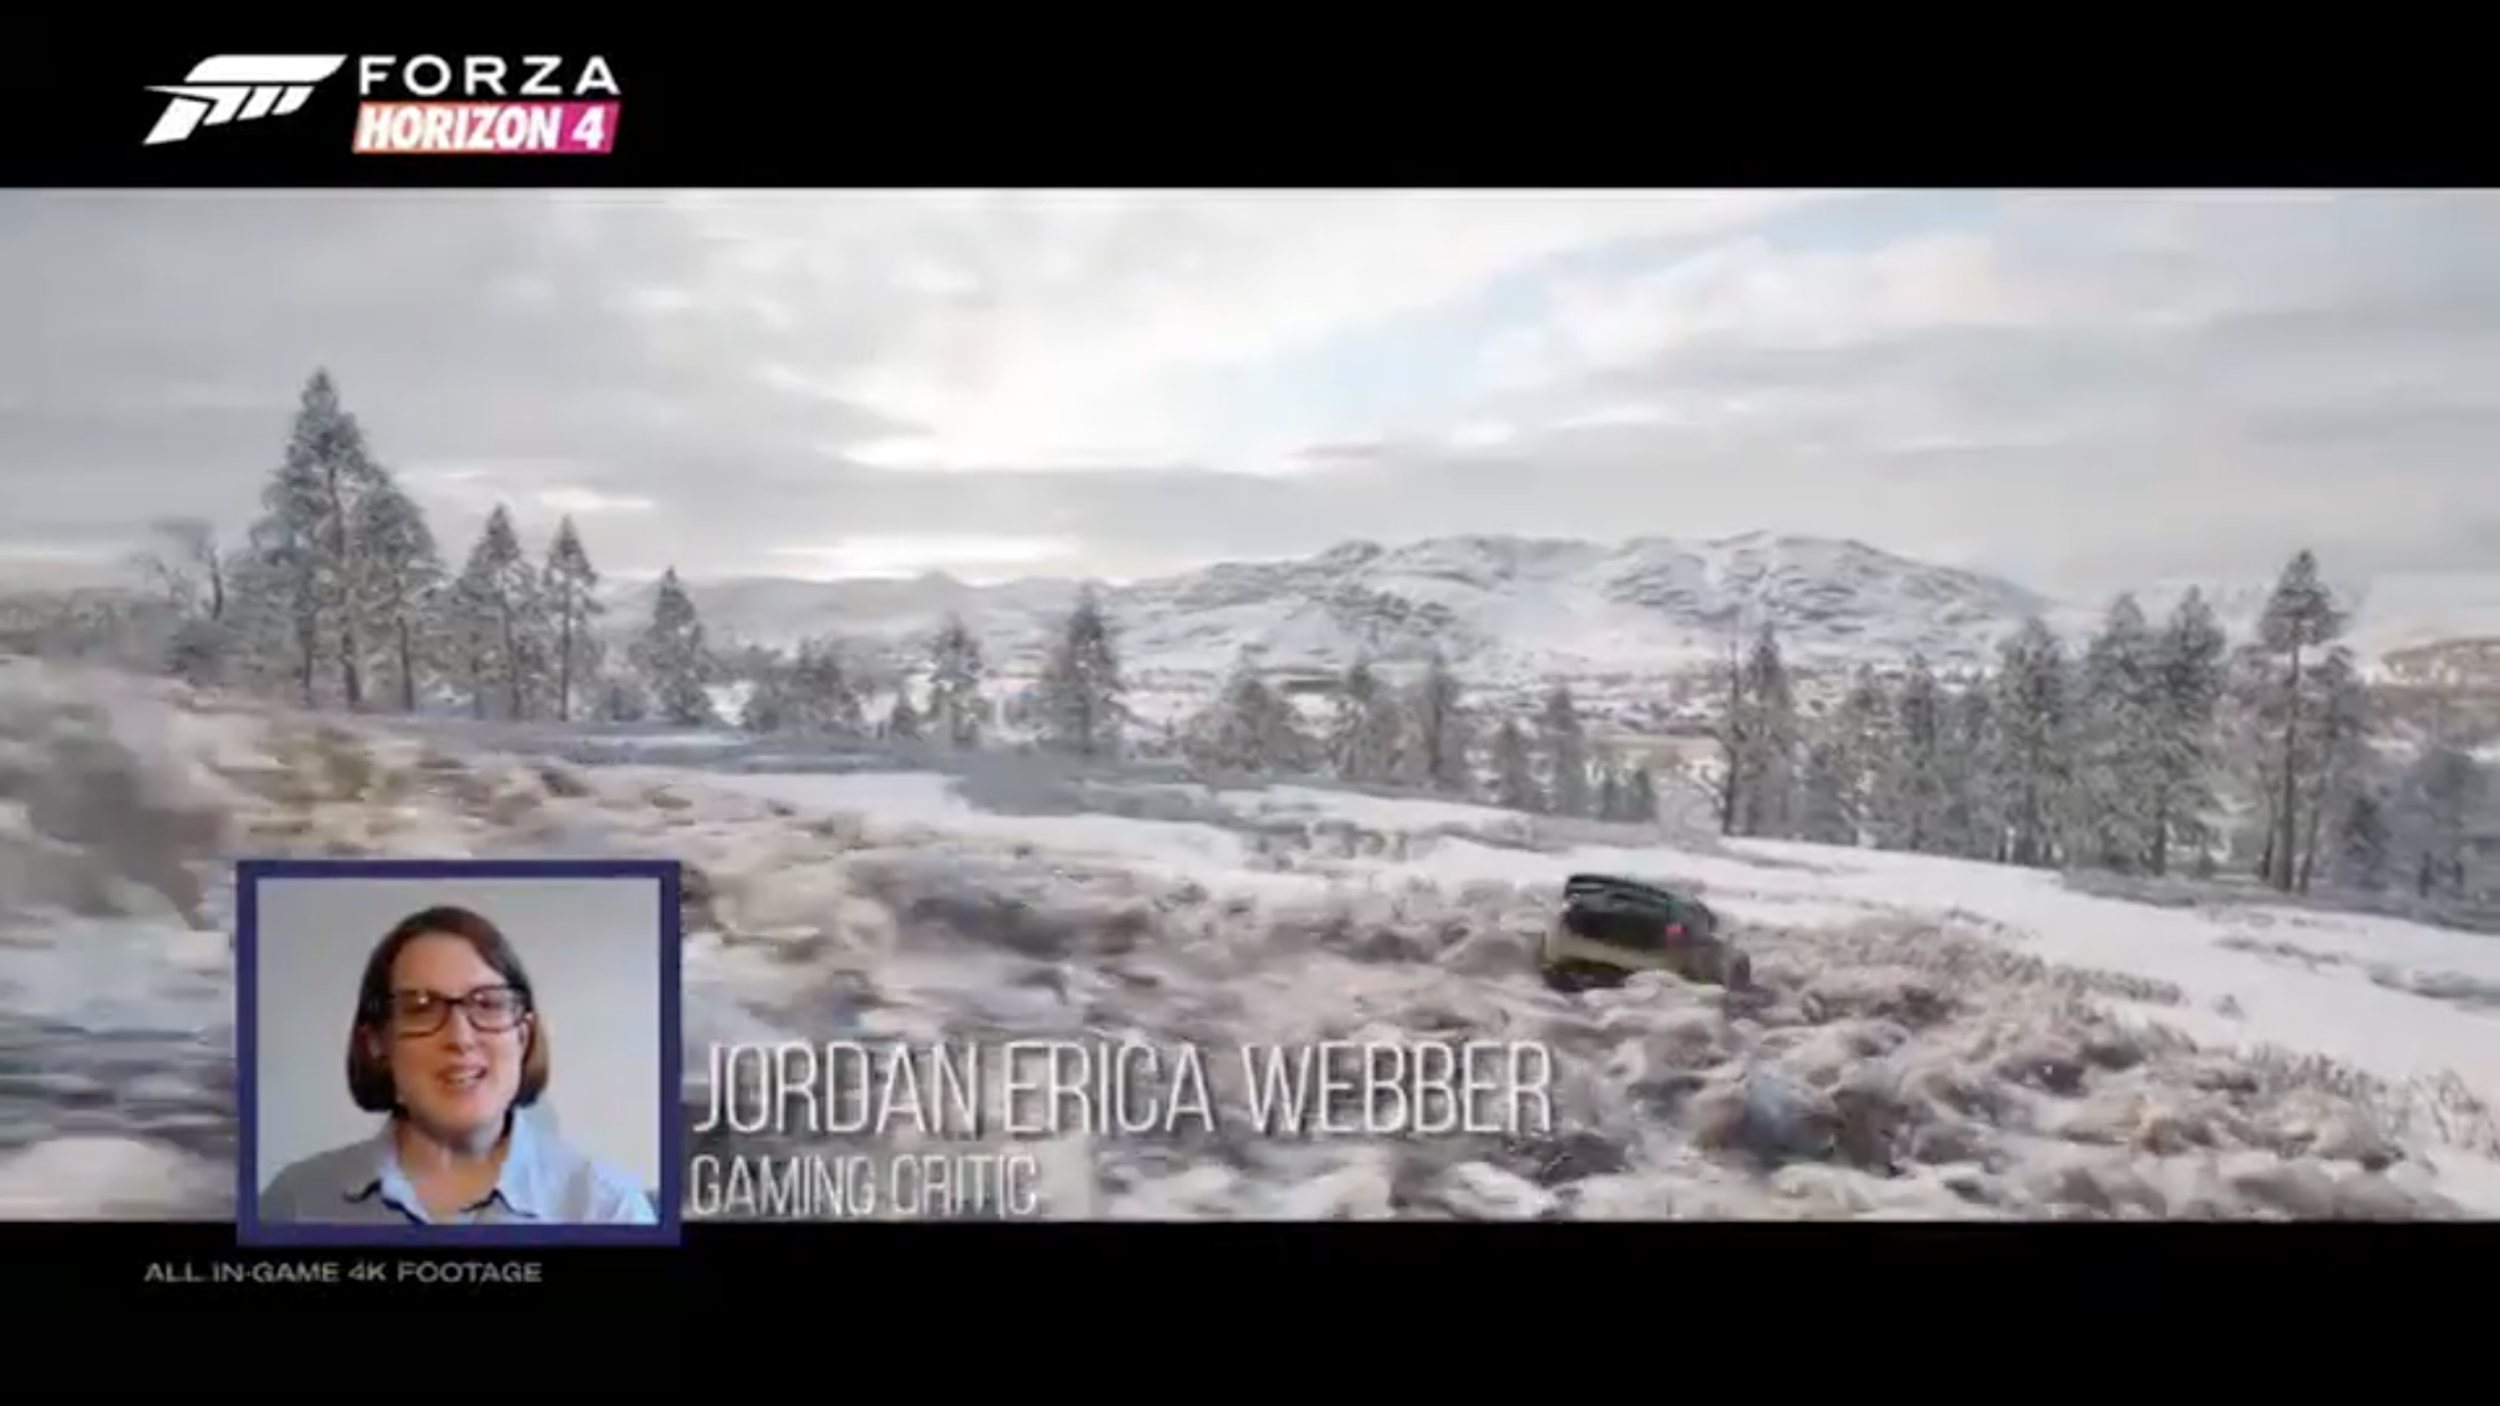 Episode 4  Gaming news and Forza Horizon 4